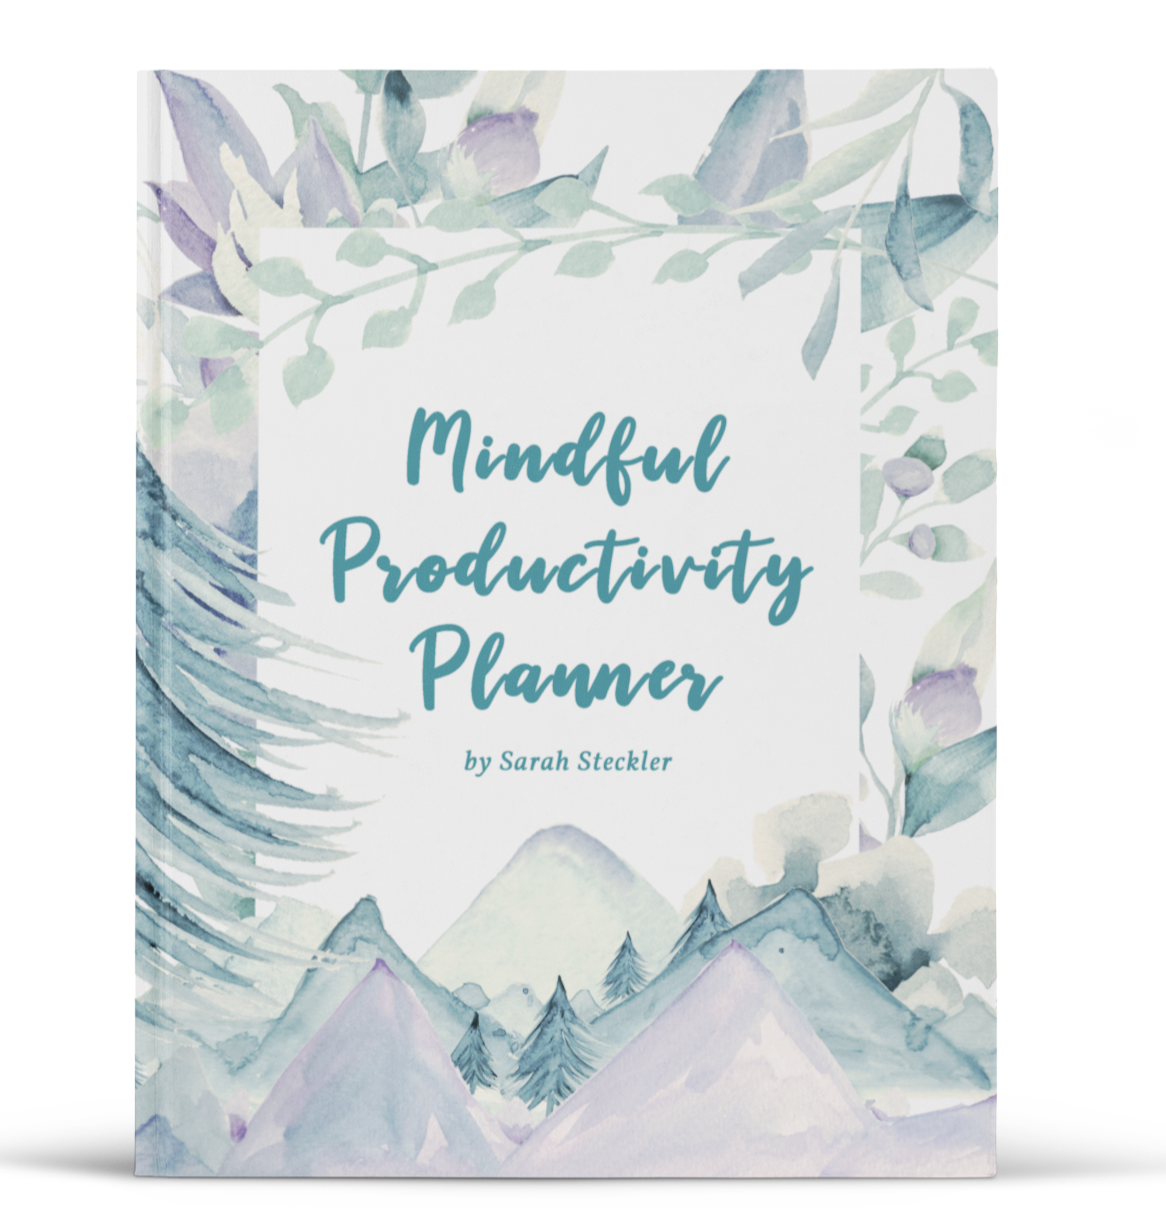 Mindful Productivity Planner